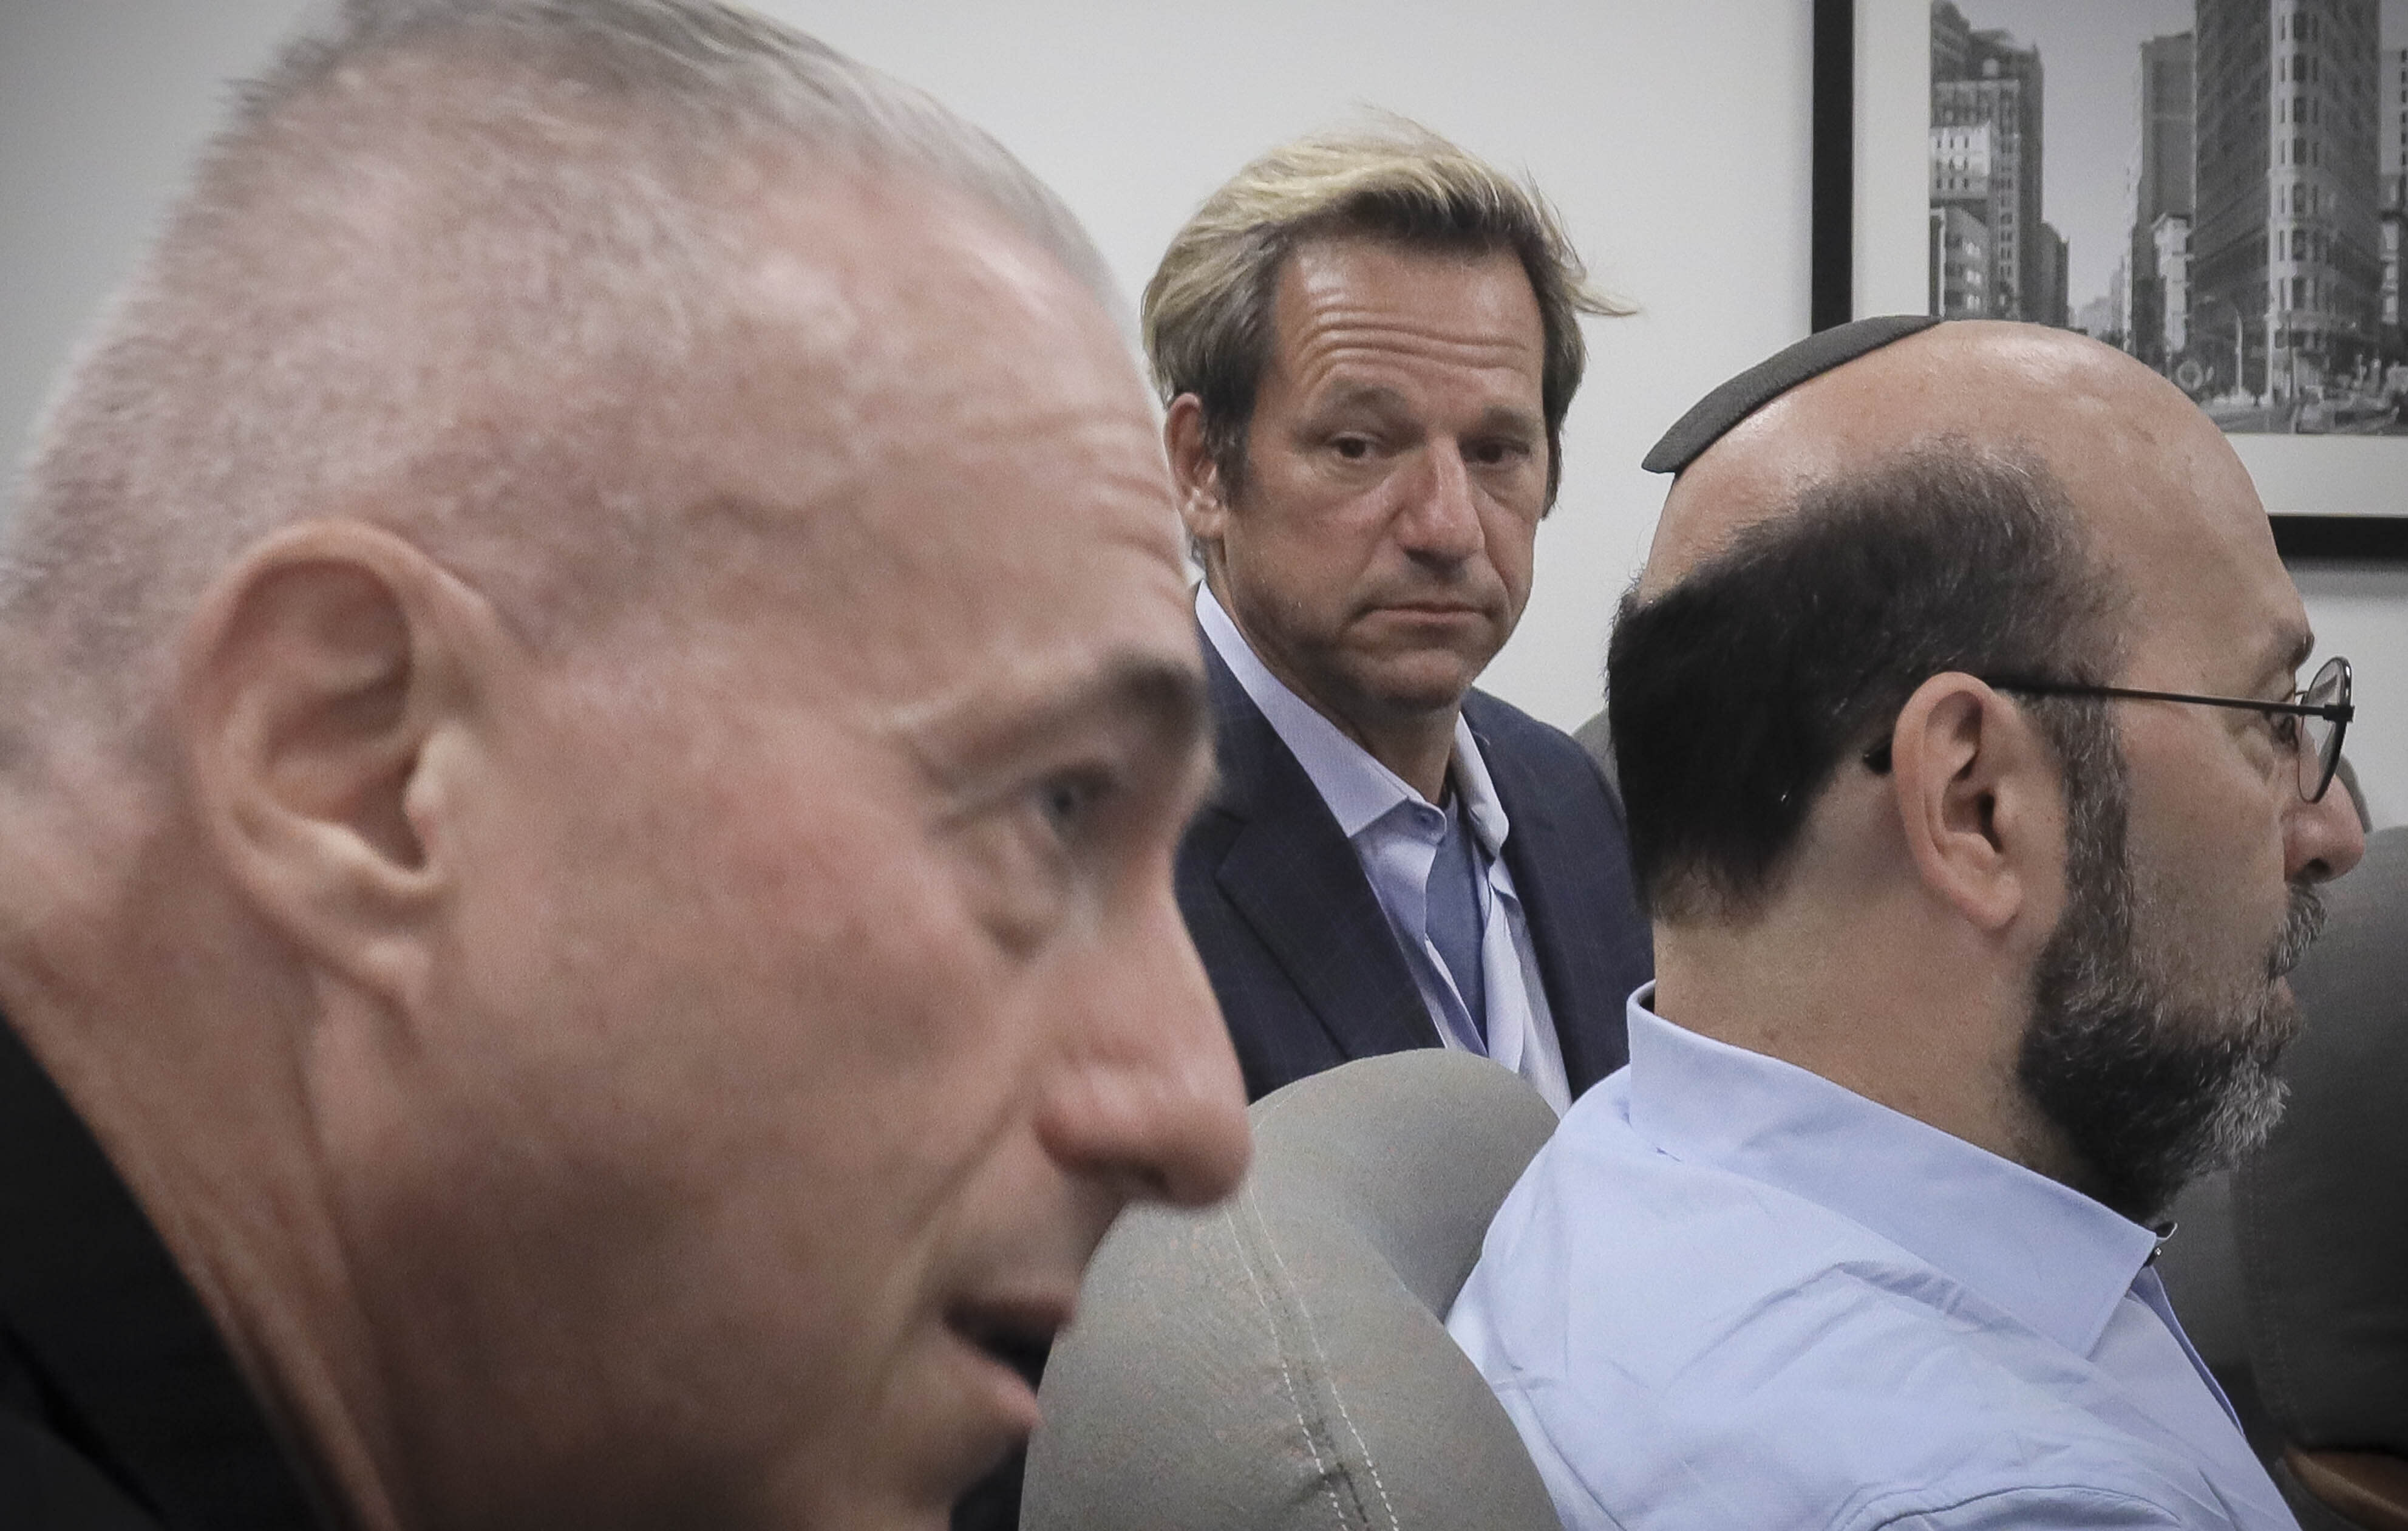 Barry Singer, left, David Bressler, center, and Jay Goldberg, right, who say they were sexually abused while they were students at Marsha Stern Talmudical Academy (MTA)—also known as Yeshiva University High School for Boys in Manhattan, hold a press conference, Thursday Aug. 22, 2019, in New York. They are among 38 former students in a lawsuit alleging sexual abuse by two rabbis: George Finkelstein, a long-time MTA principal, and Macy Gordon, a long-time MTA Judaic Studies teacher. (AP Photo/Bebeto Matthews)